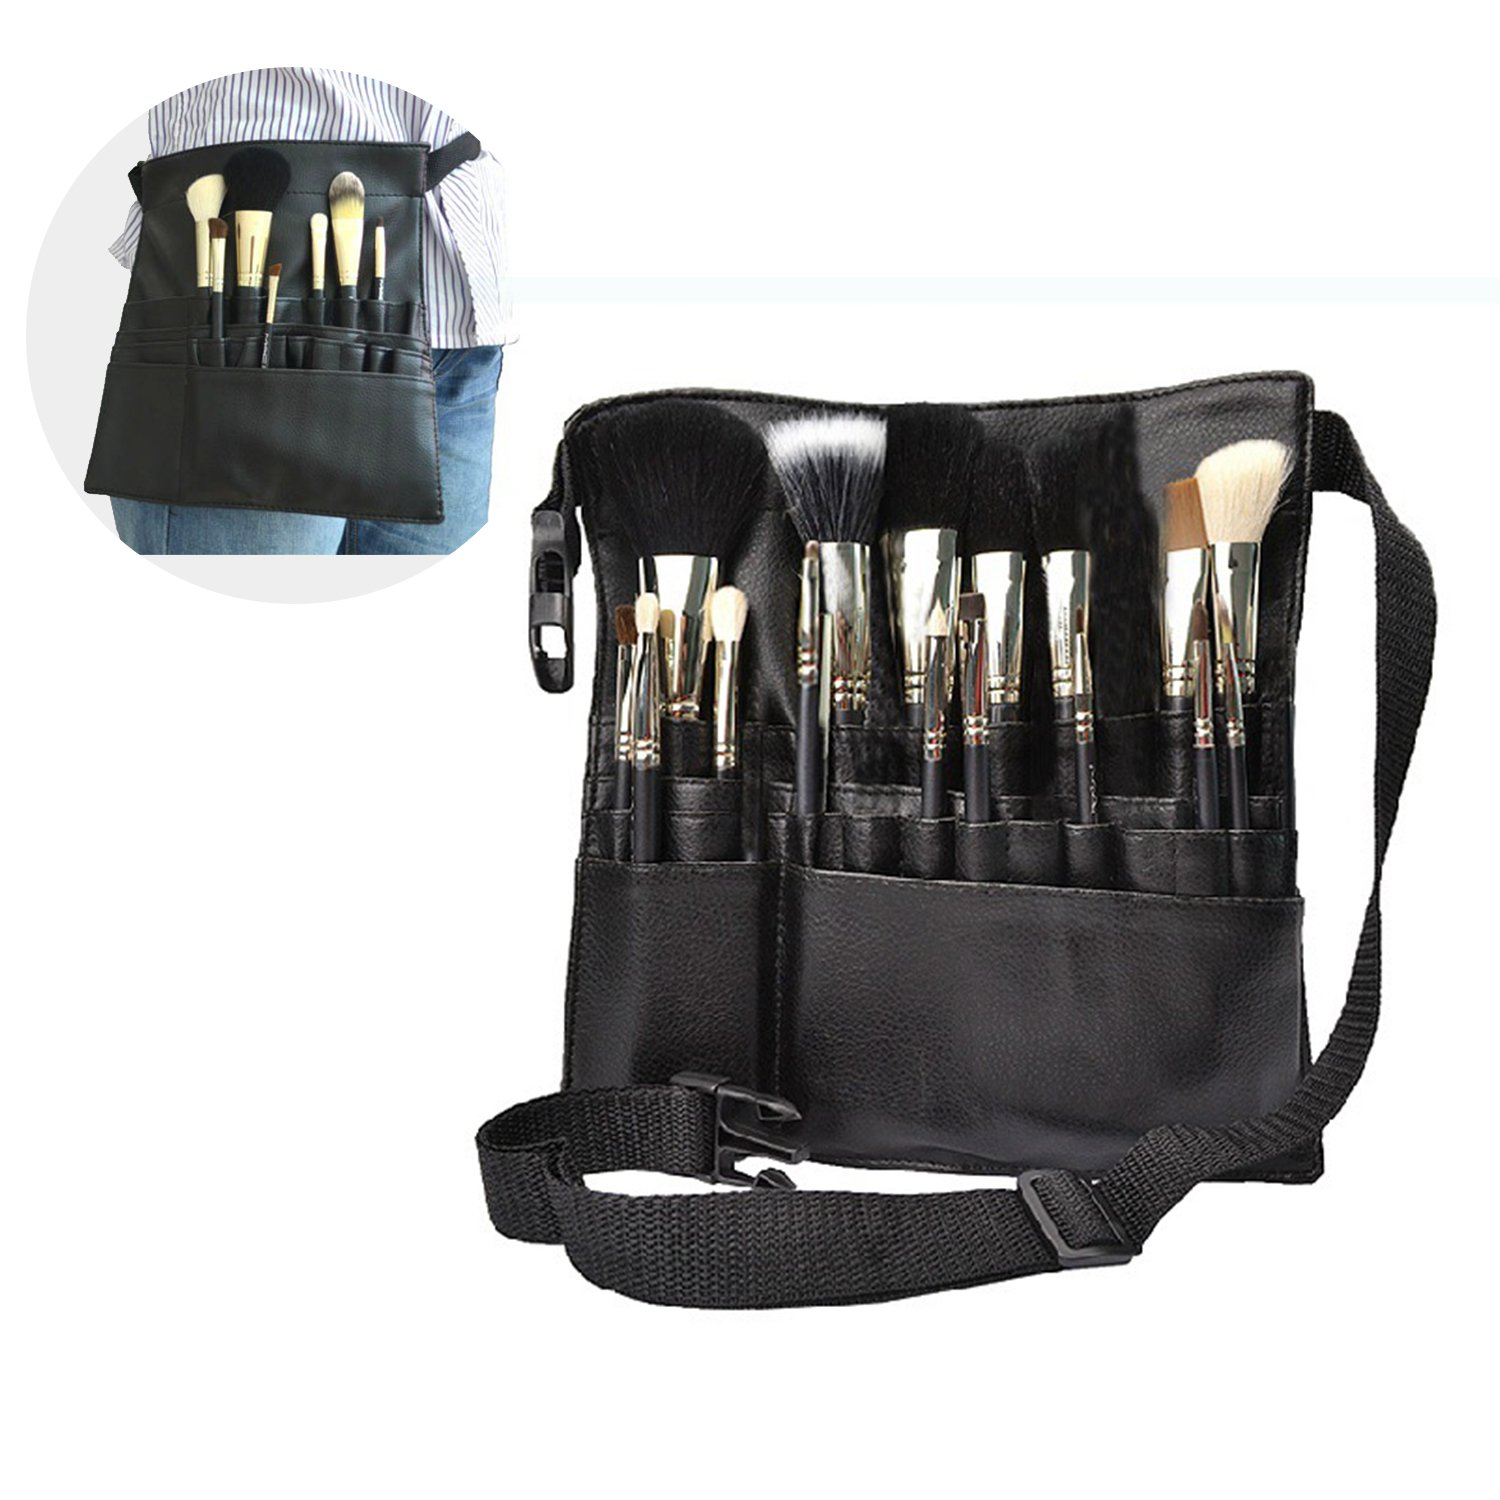 Brand New 22 Pockets Artist Professional Makeup Brush Bag Pouch Strap Belt Apron Tool Cosmetic Brush Case Bag The Best Kingdom